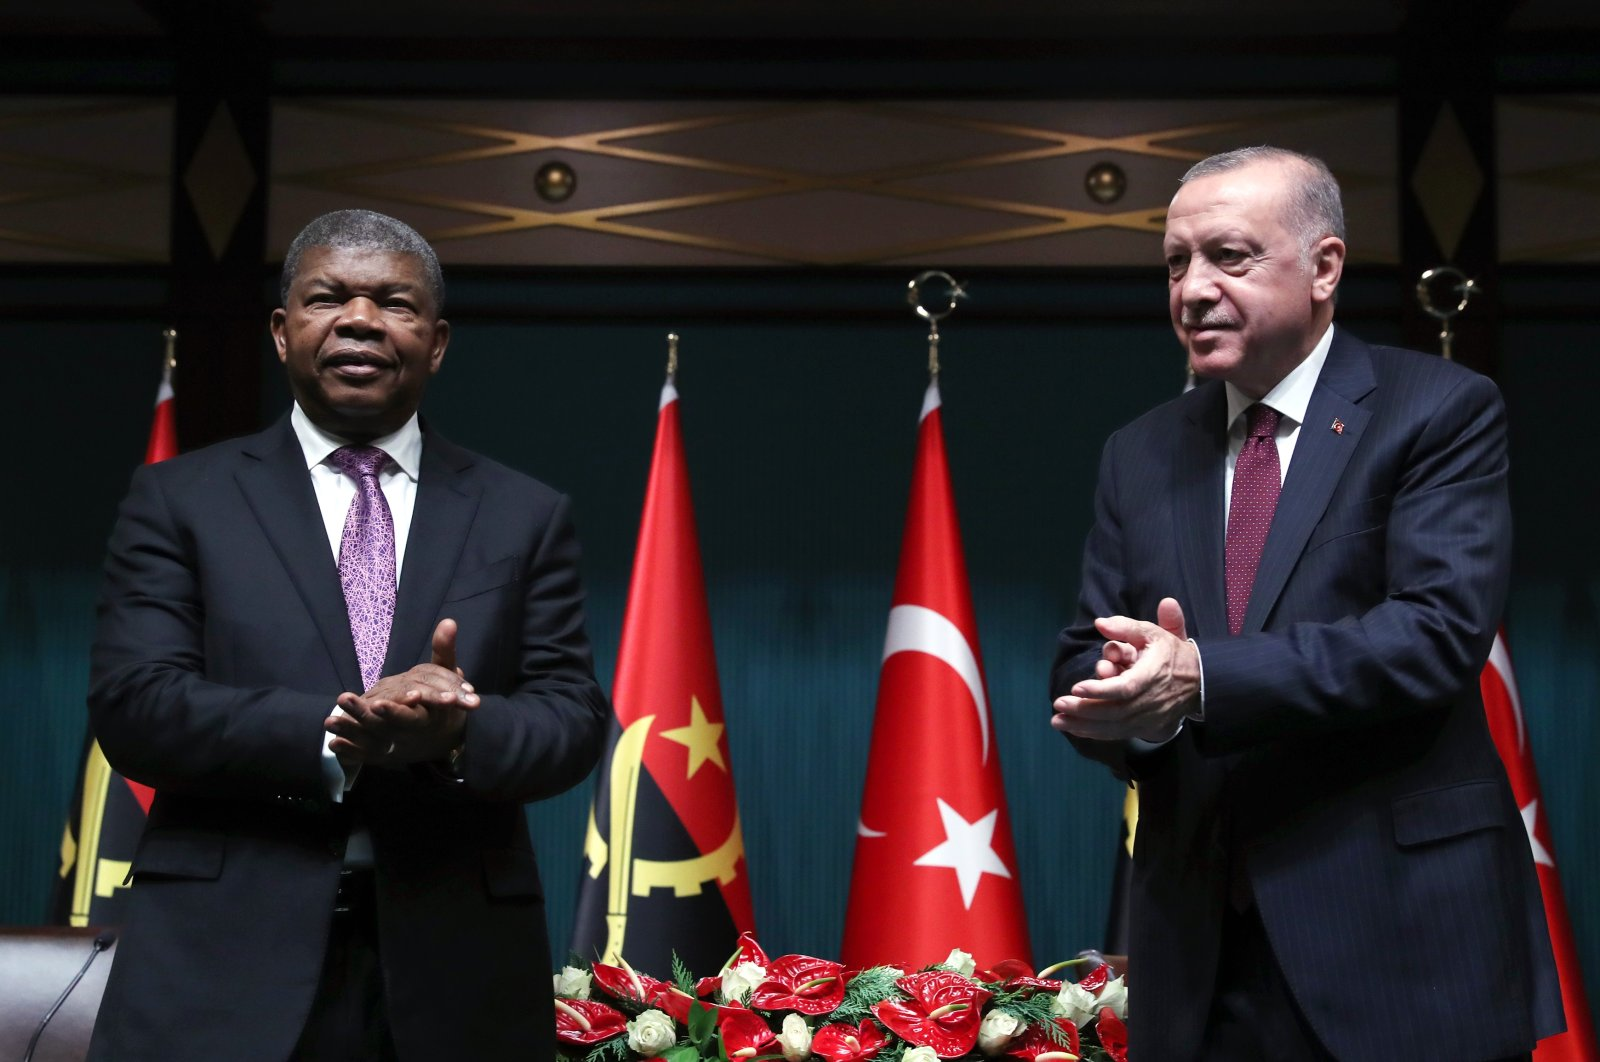 President Recep Tayyip Erdoğan (R) and his Angolan counterpart João Manuel Gonçalves Lourenço applaud after a bilateral agreement was signed at the Presidential Complex in Ankara, Turkey on July 27, 2021 (AA Photo)